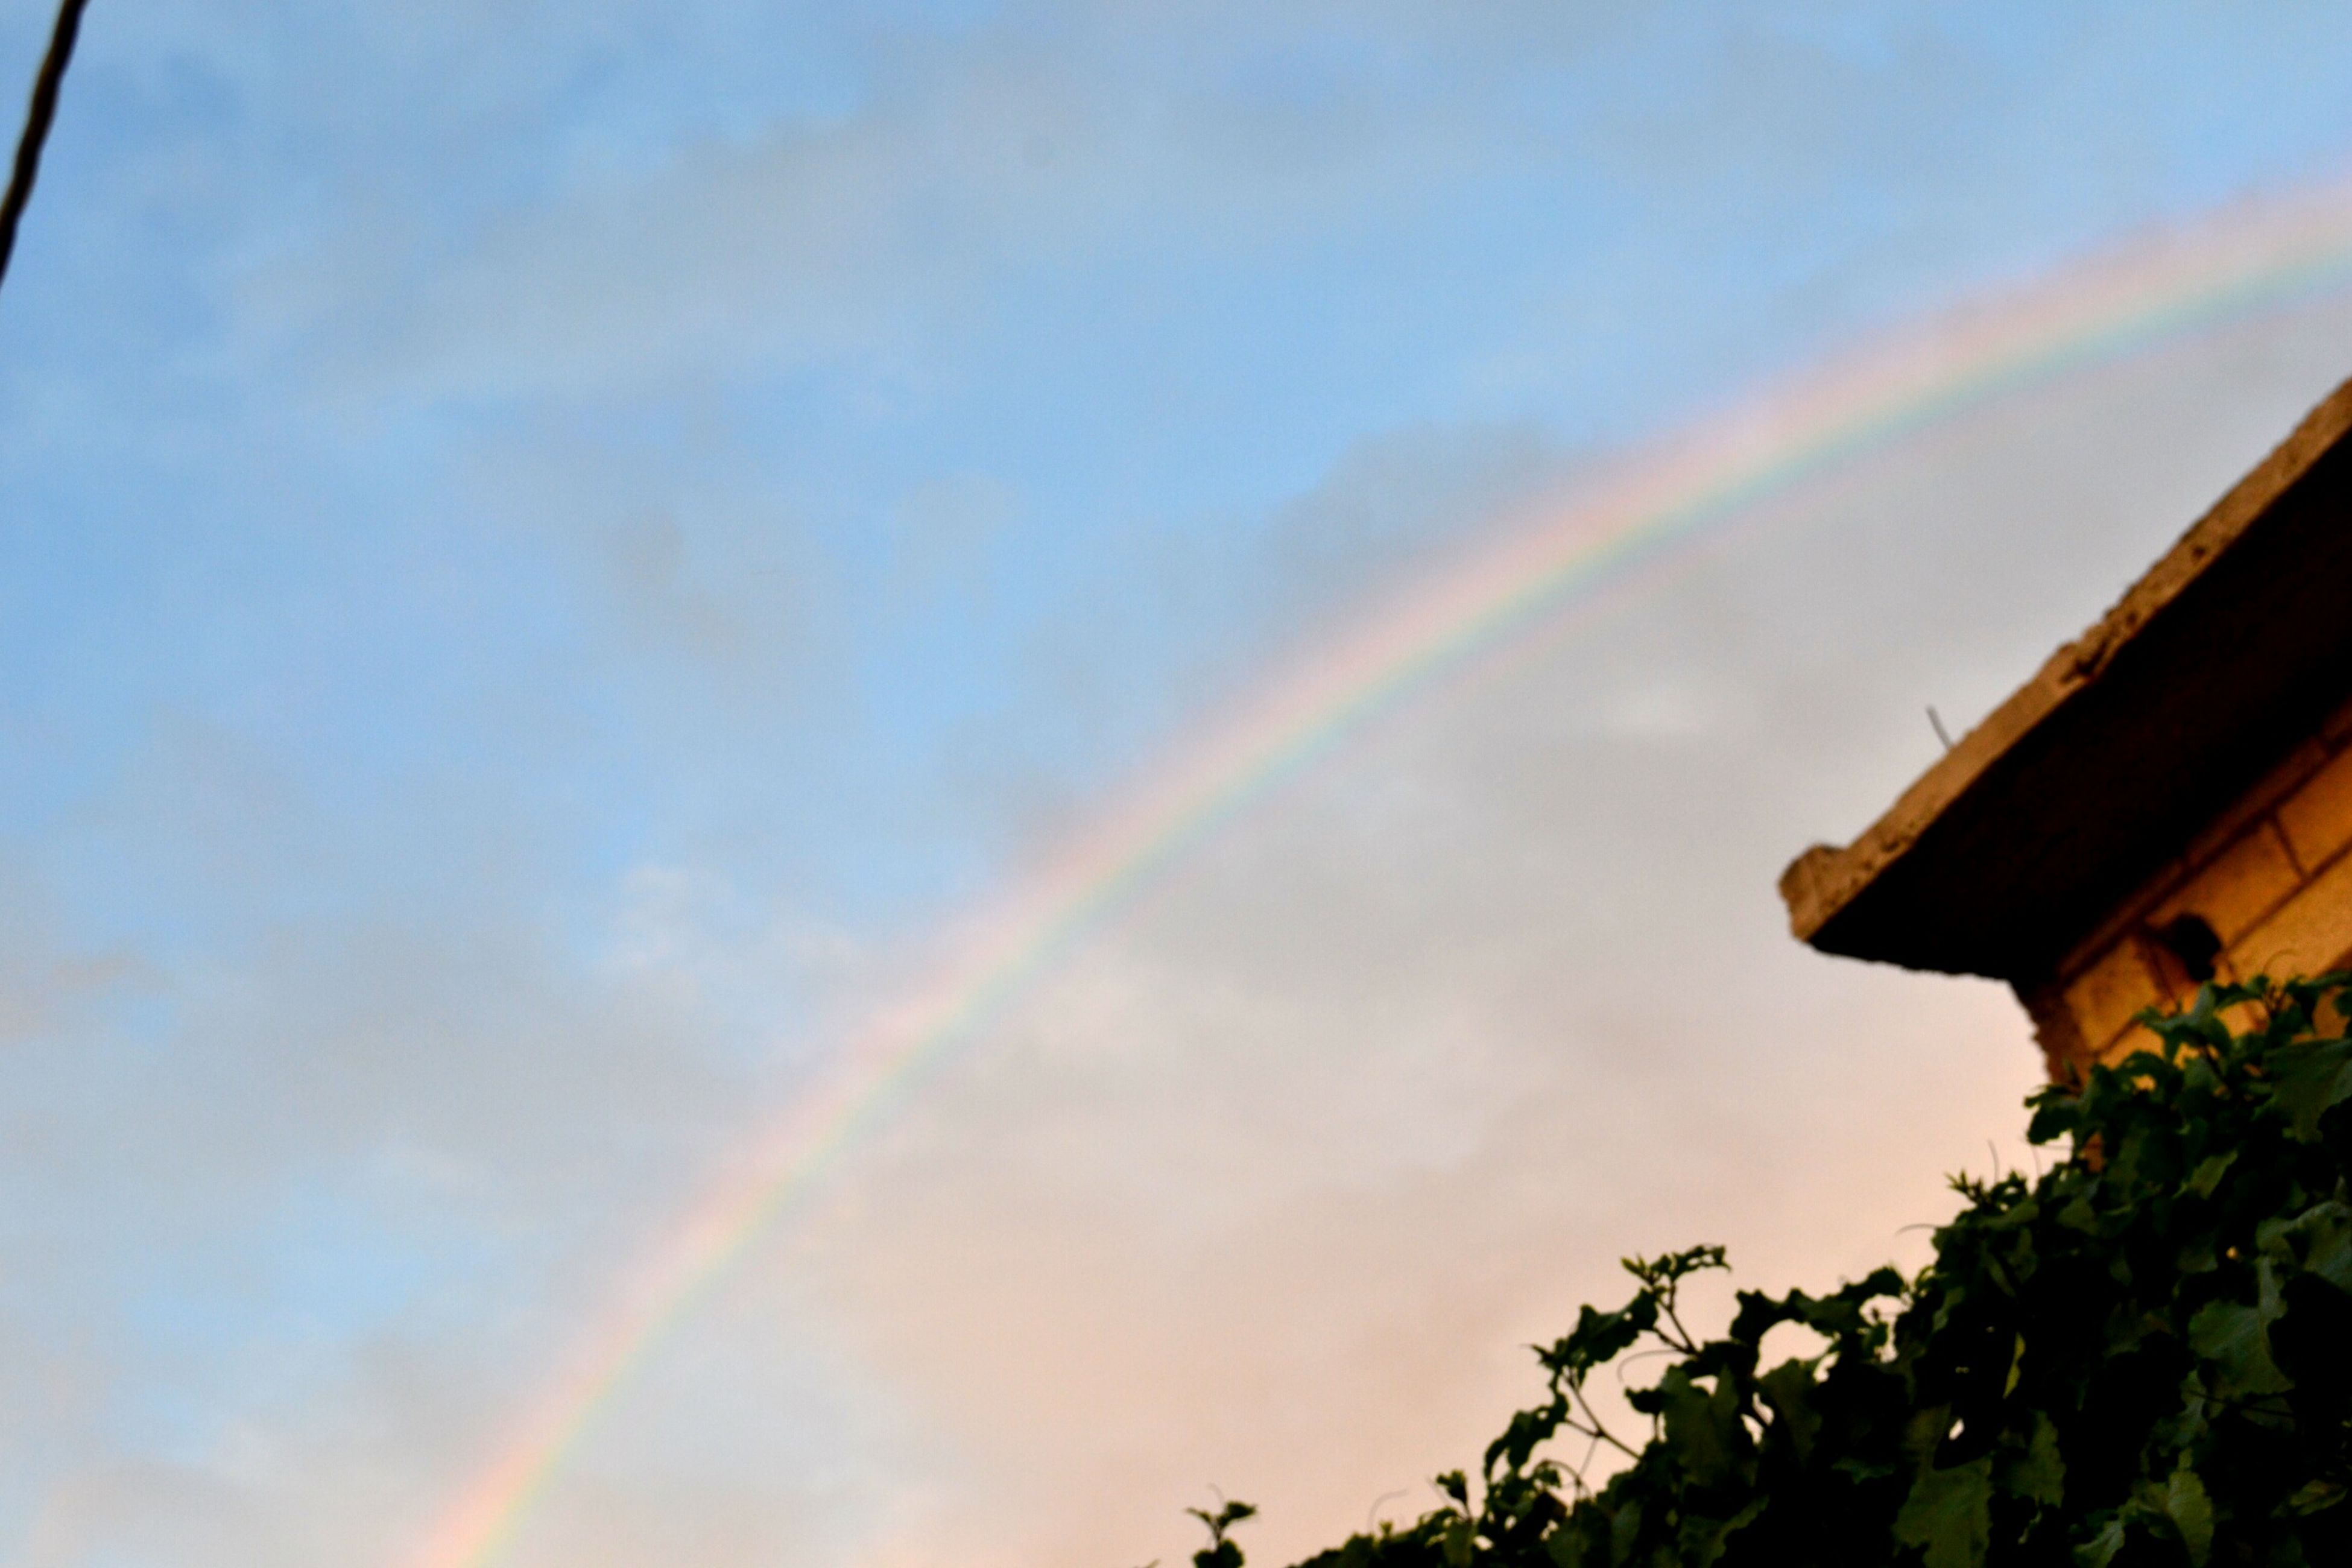 rainbow, low angle view, sky, tree, multi colored, cloud - sky, built structure, architecture, building exterior, beauty in nature, nature, cloud, growth, scenics, high section, sunset, outdoors, cloudy, no people, house